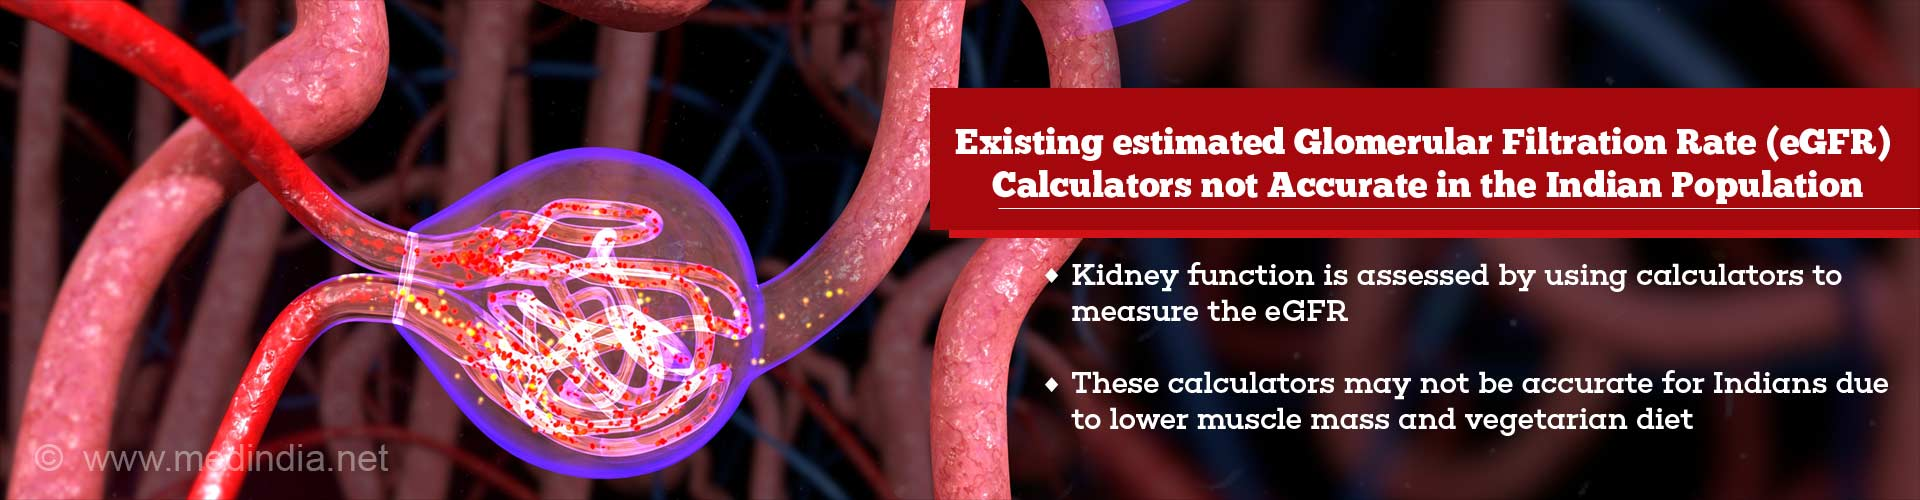 Kidney Function Calculators Not Completely Accurate in the Indian Population